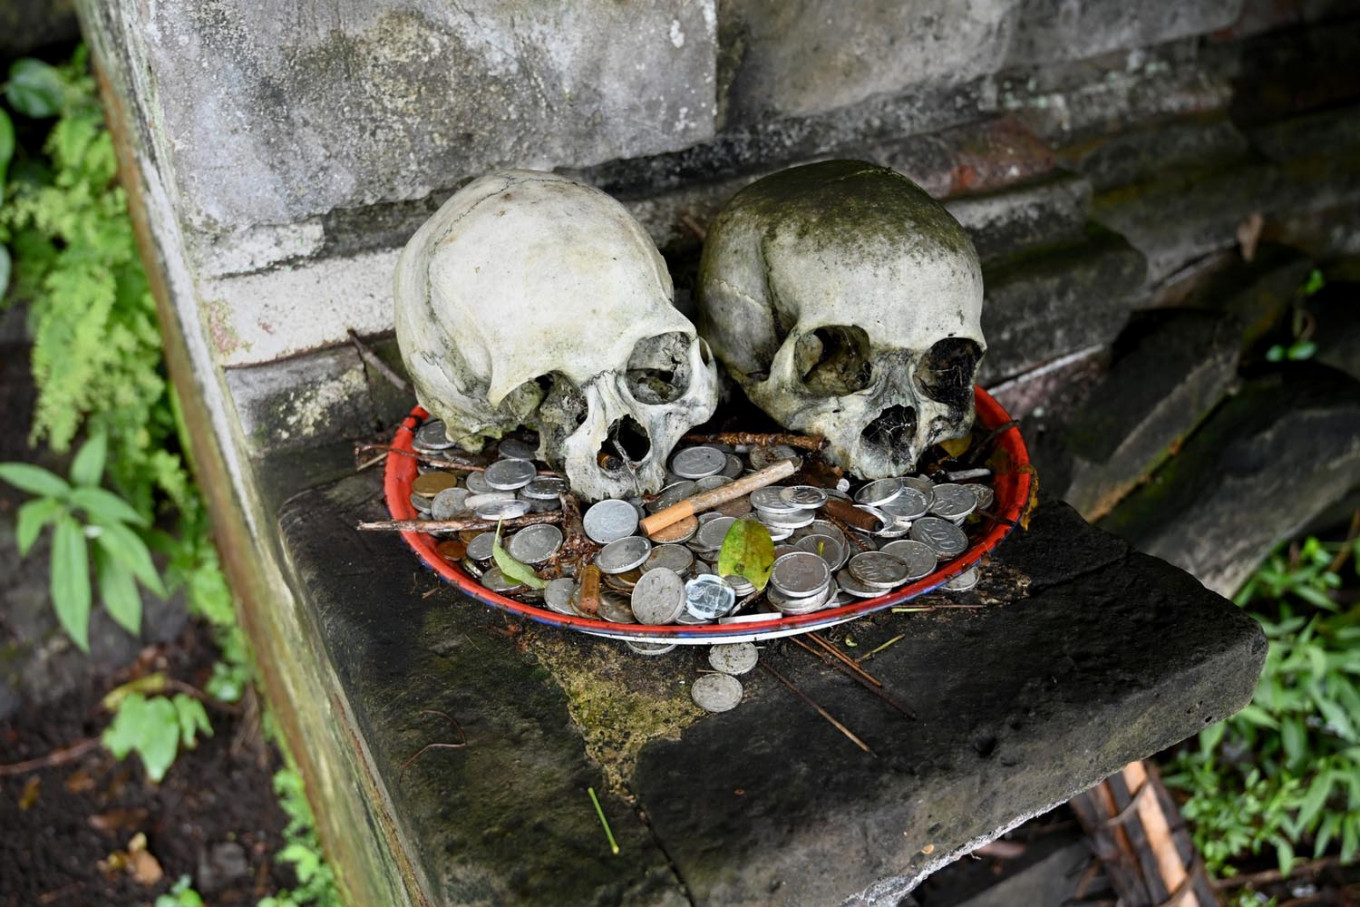 This picture taken on February 20, 2020 shows skulls on display with offerings at a cemetery where Bali's Trunyanese people hold open-air burials - before restrictions were implemented due to the COVID-19 coronavirus - near the village of Trunyan in Bangli Regency, near Lake Batur on Bali island. - For centuries Bali's Trunyanese people have left their dead to decompose in the open air, the bodies placed in bamboo cages until only the skeletons remain -- a ritual they haven't given up -- even as the COVID-19 pandemic upends burial practices worldwide. AFP/Sonny Tumbelaka